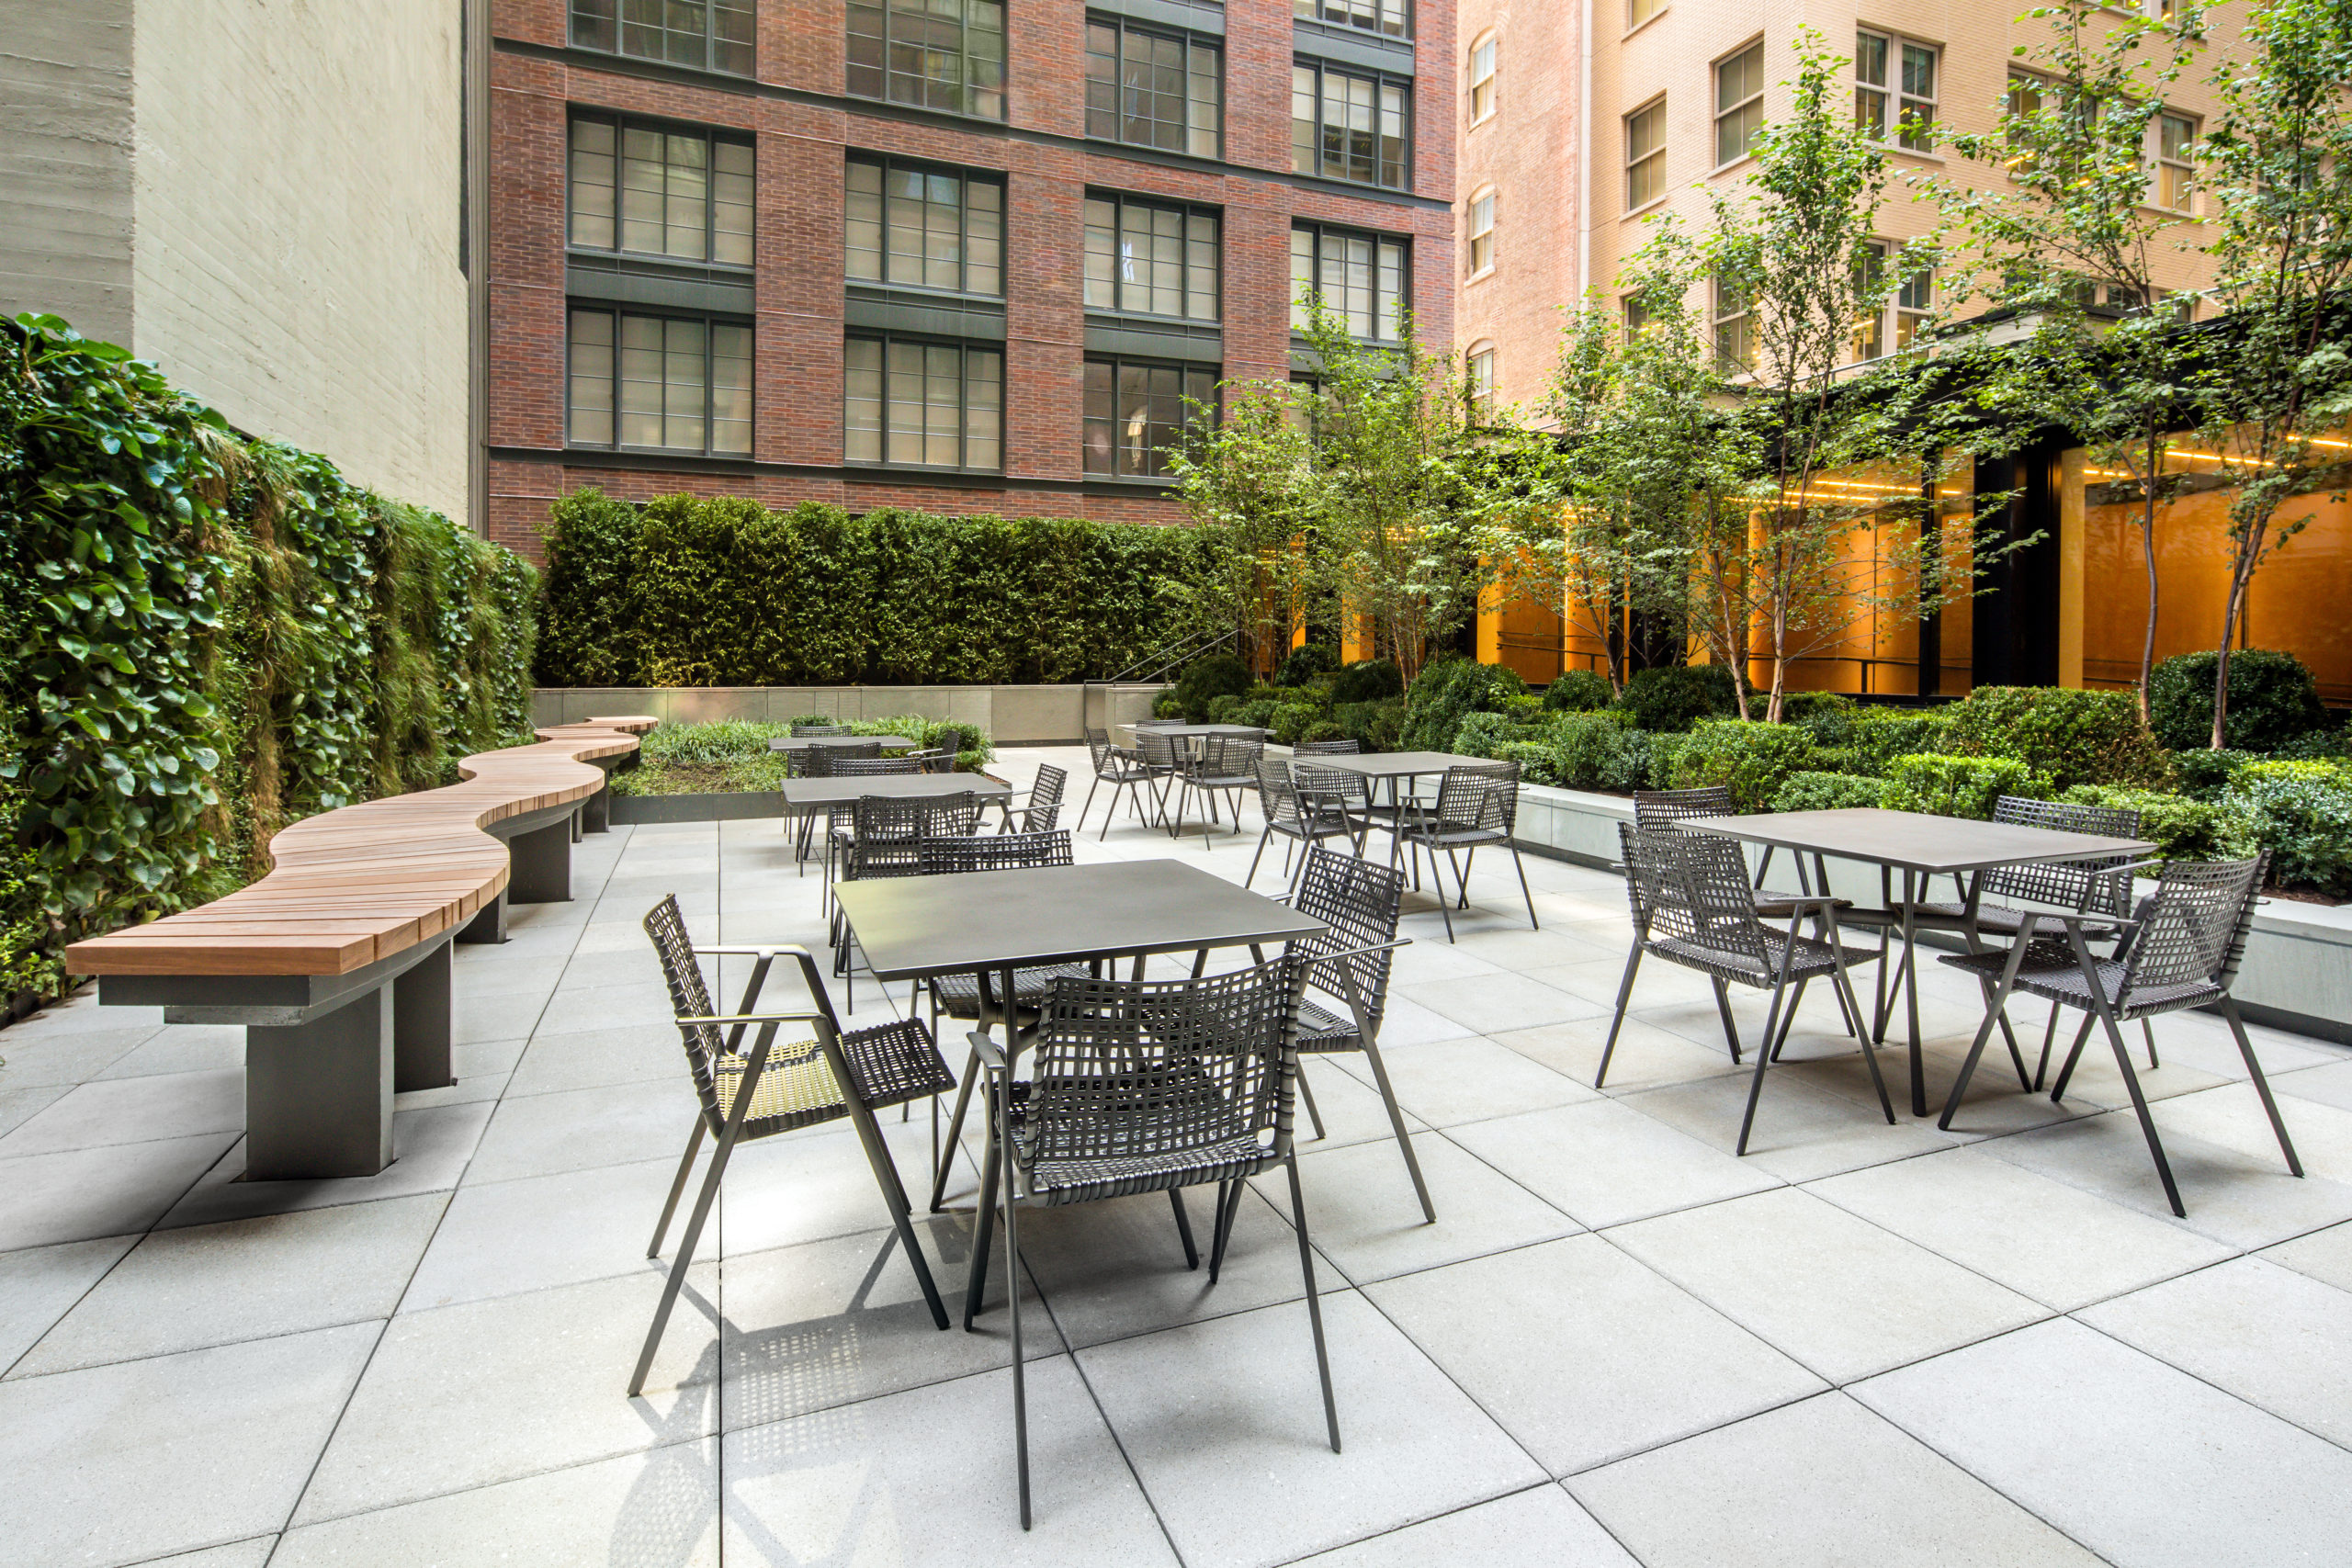 Exterior view of 70 Charlton condominiums outdoor lounge in New York City. Has dining tables, tile floors and green bushes.